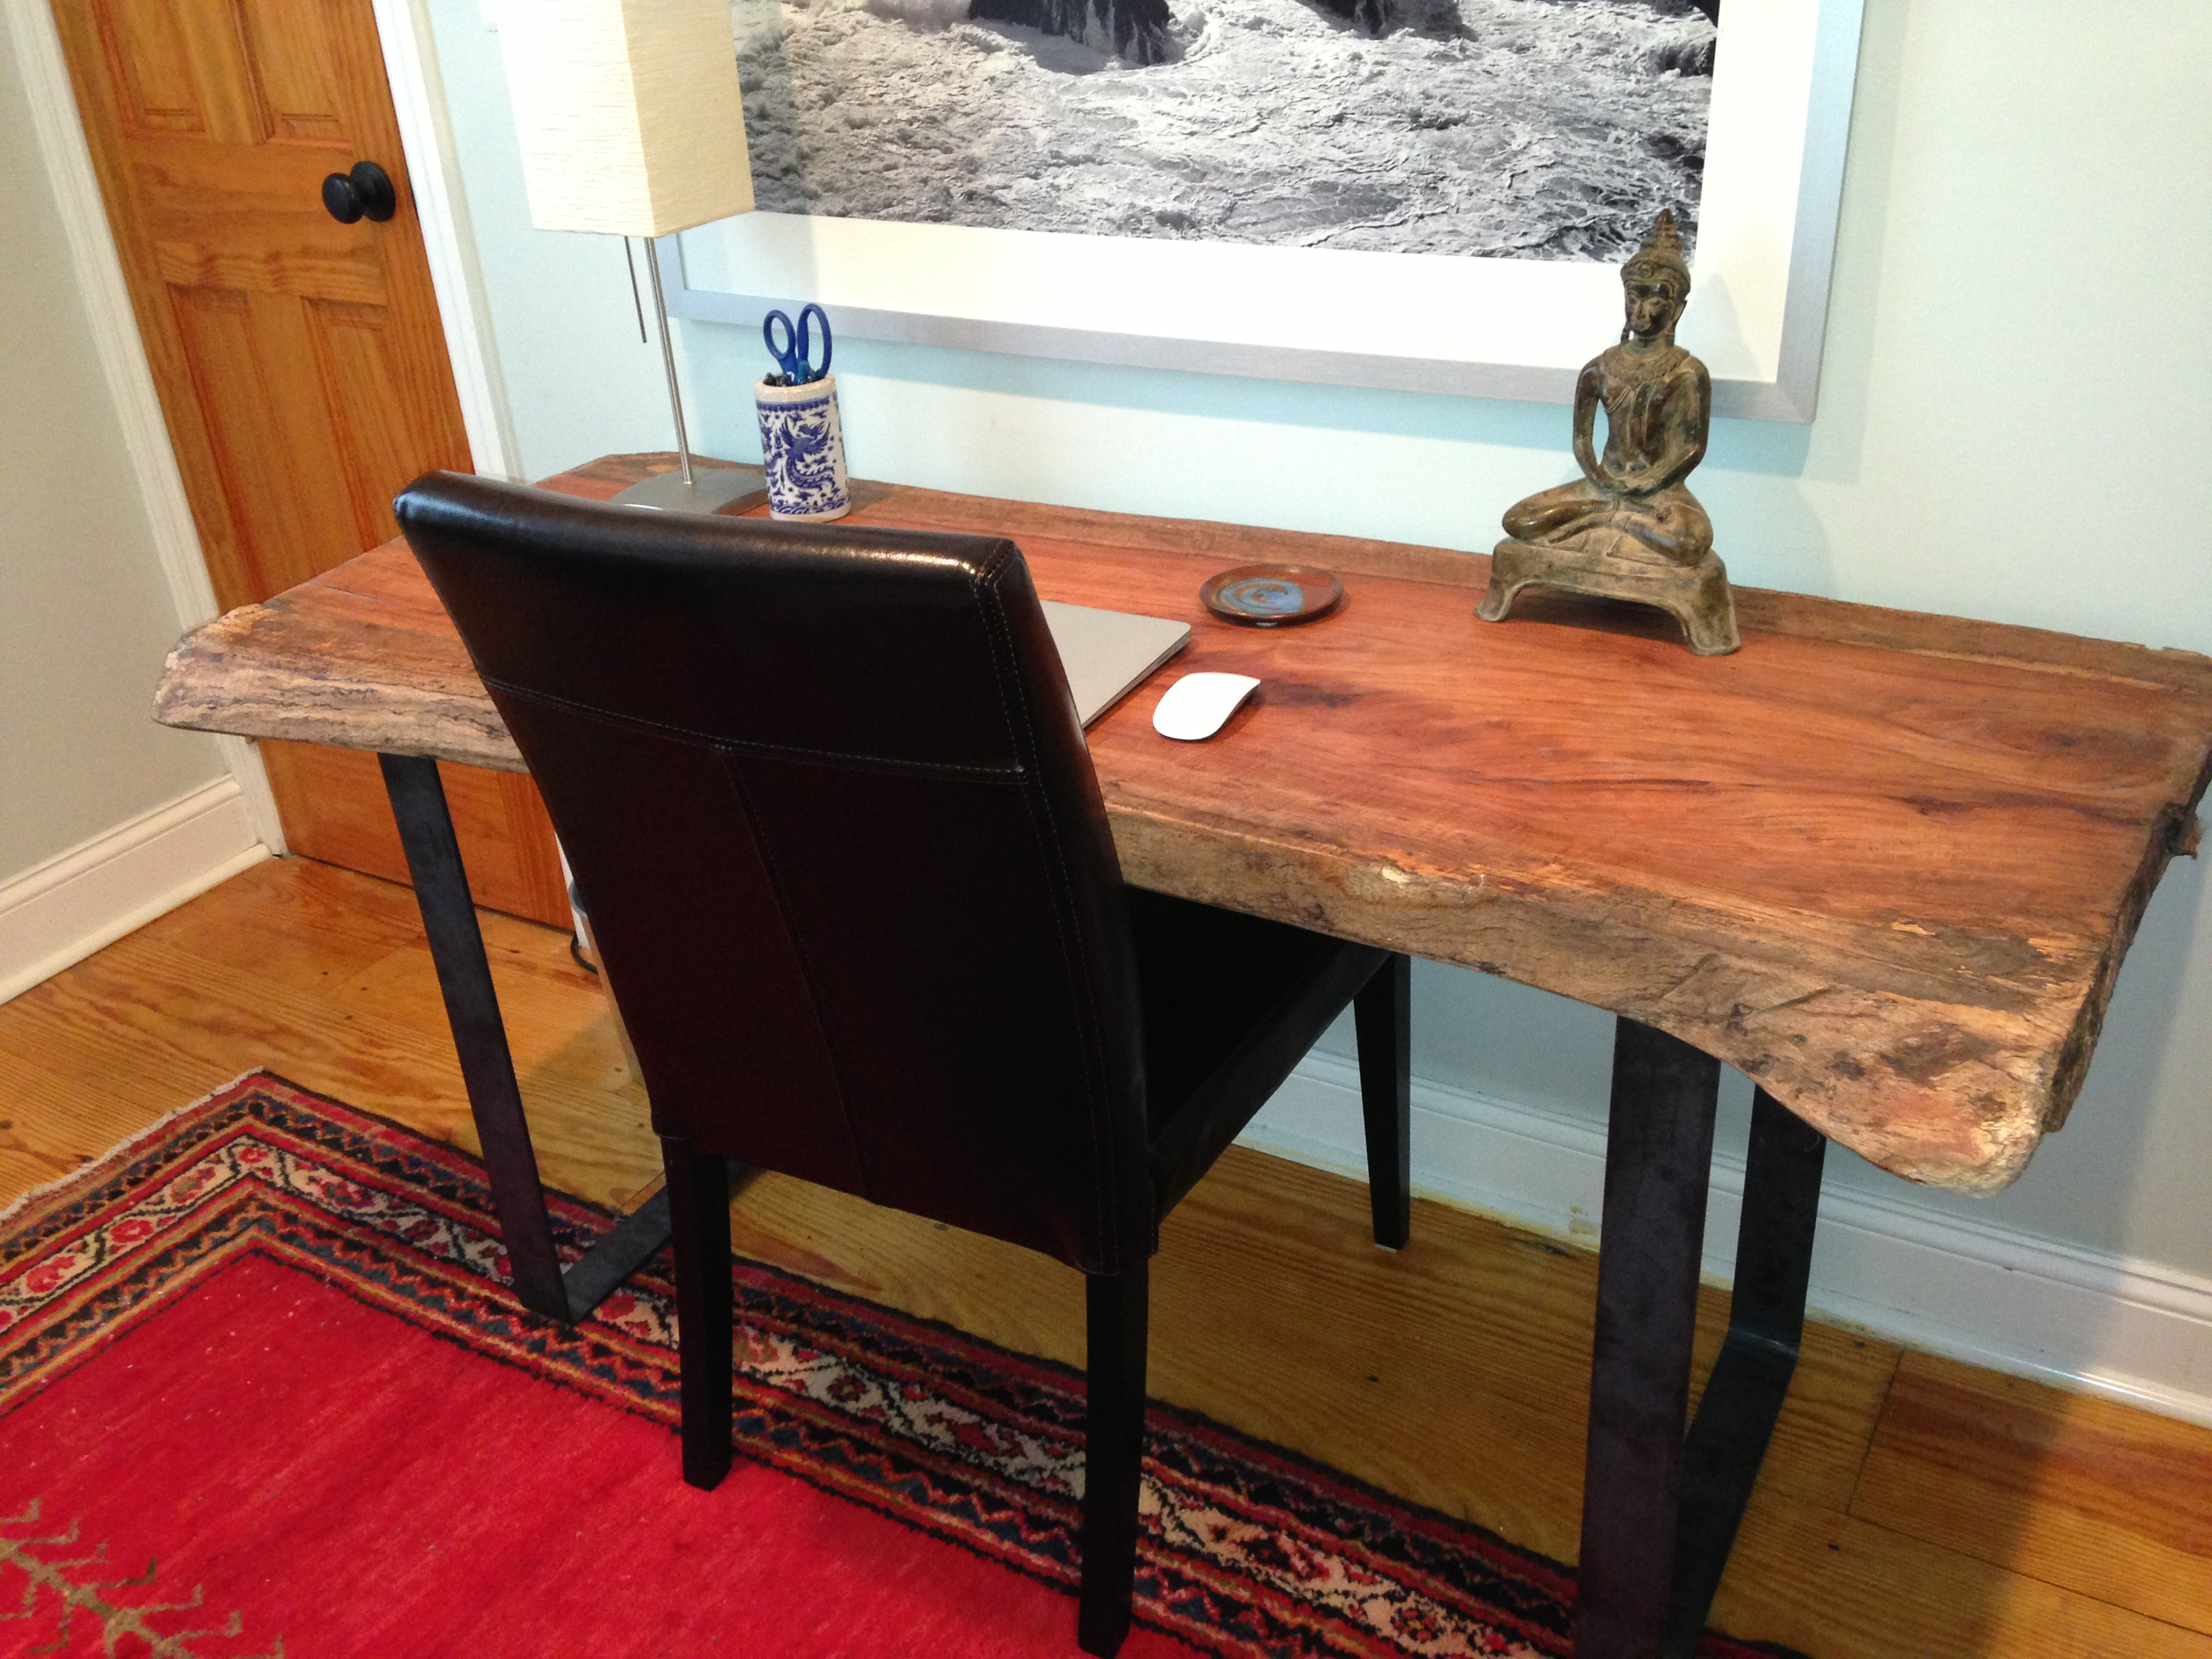 Julies Live Edge Desk with Flat Bar Desk Supports